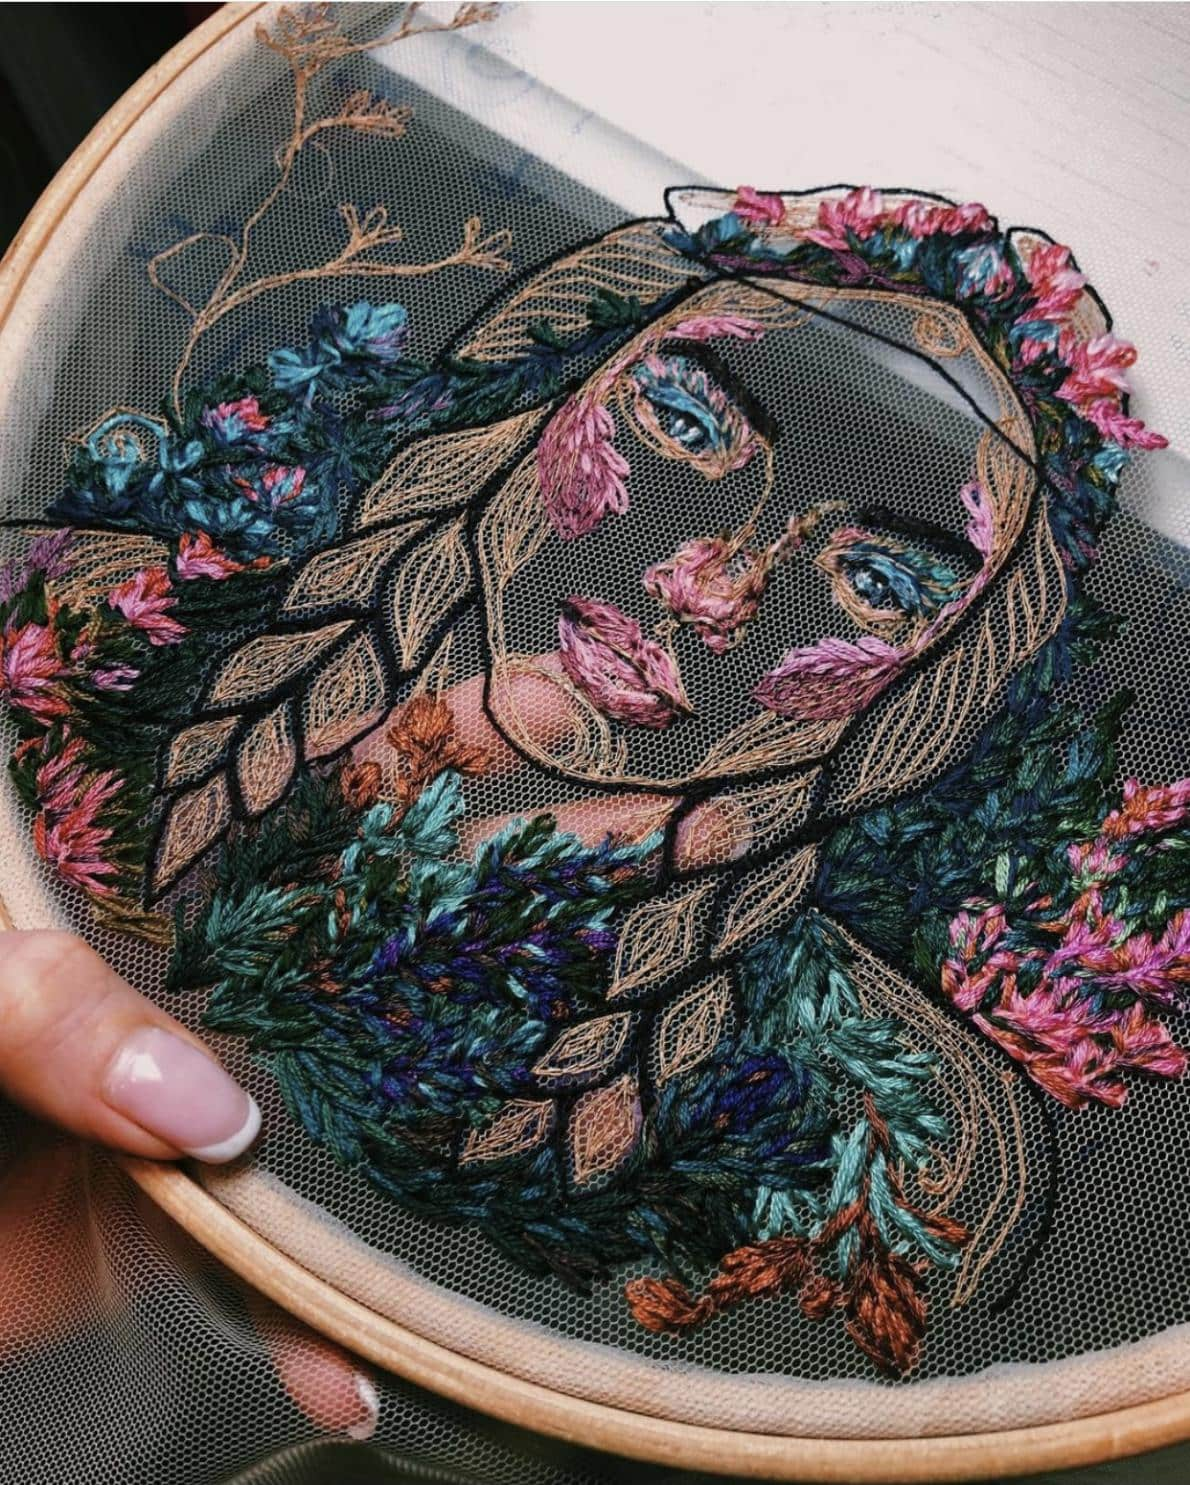 Floral Portrait embroidery by Kate Marchenko